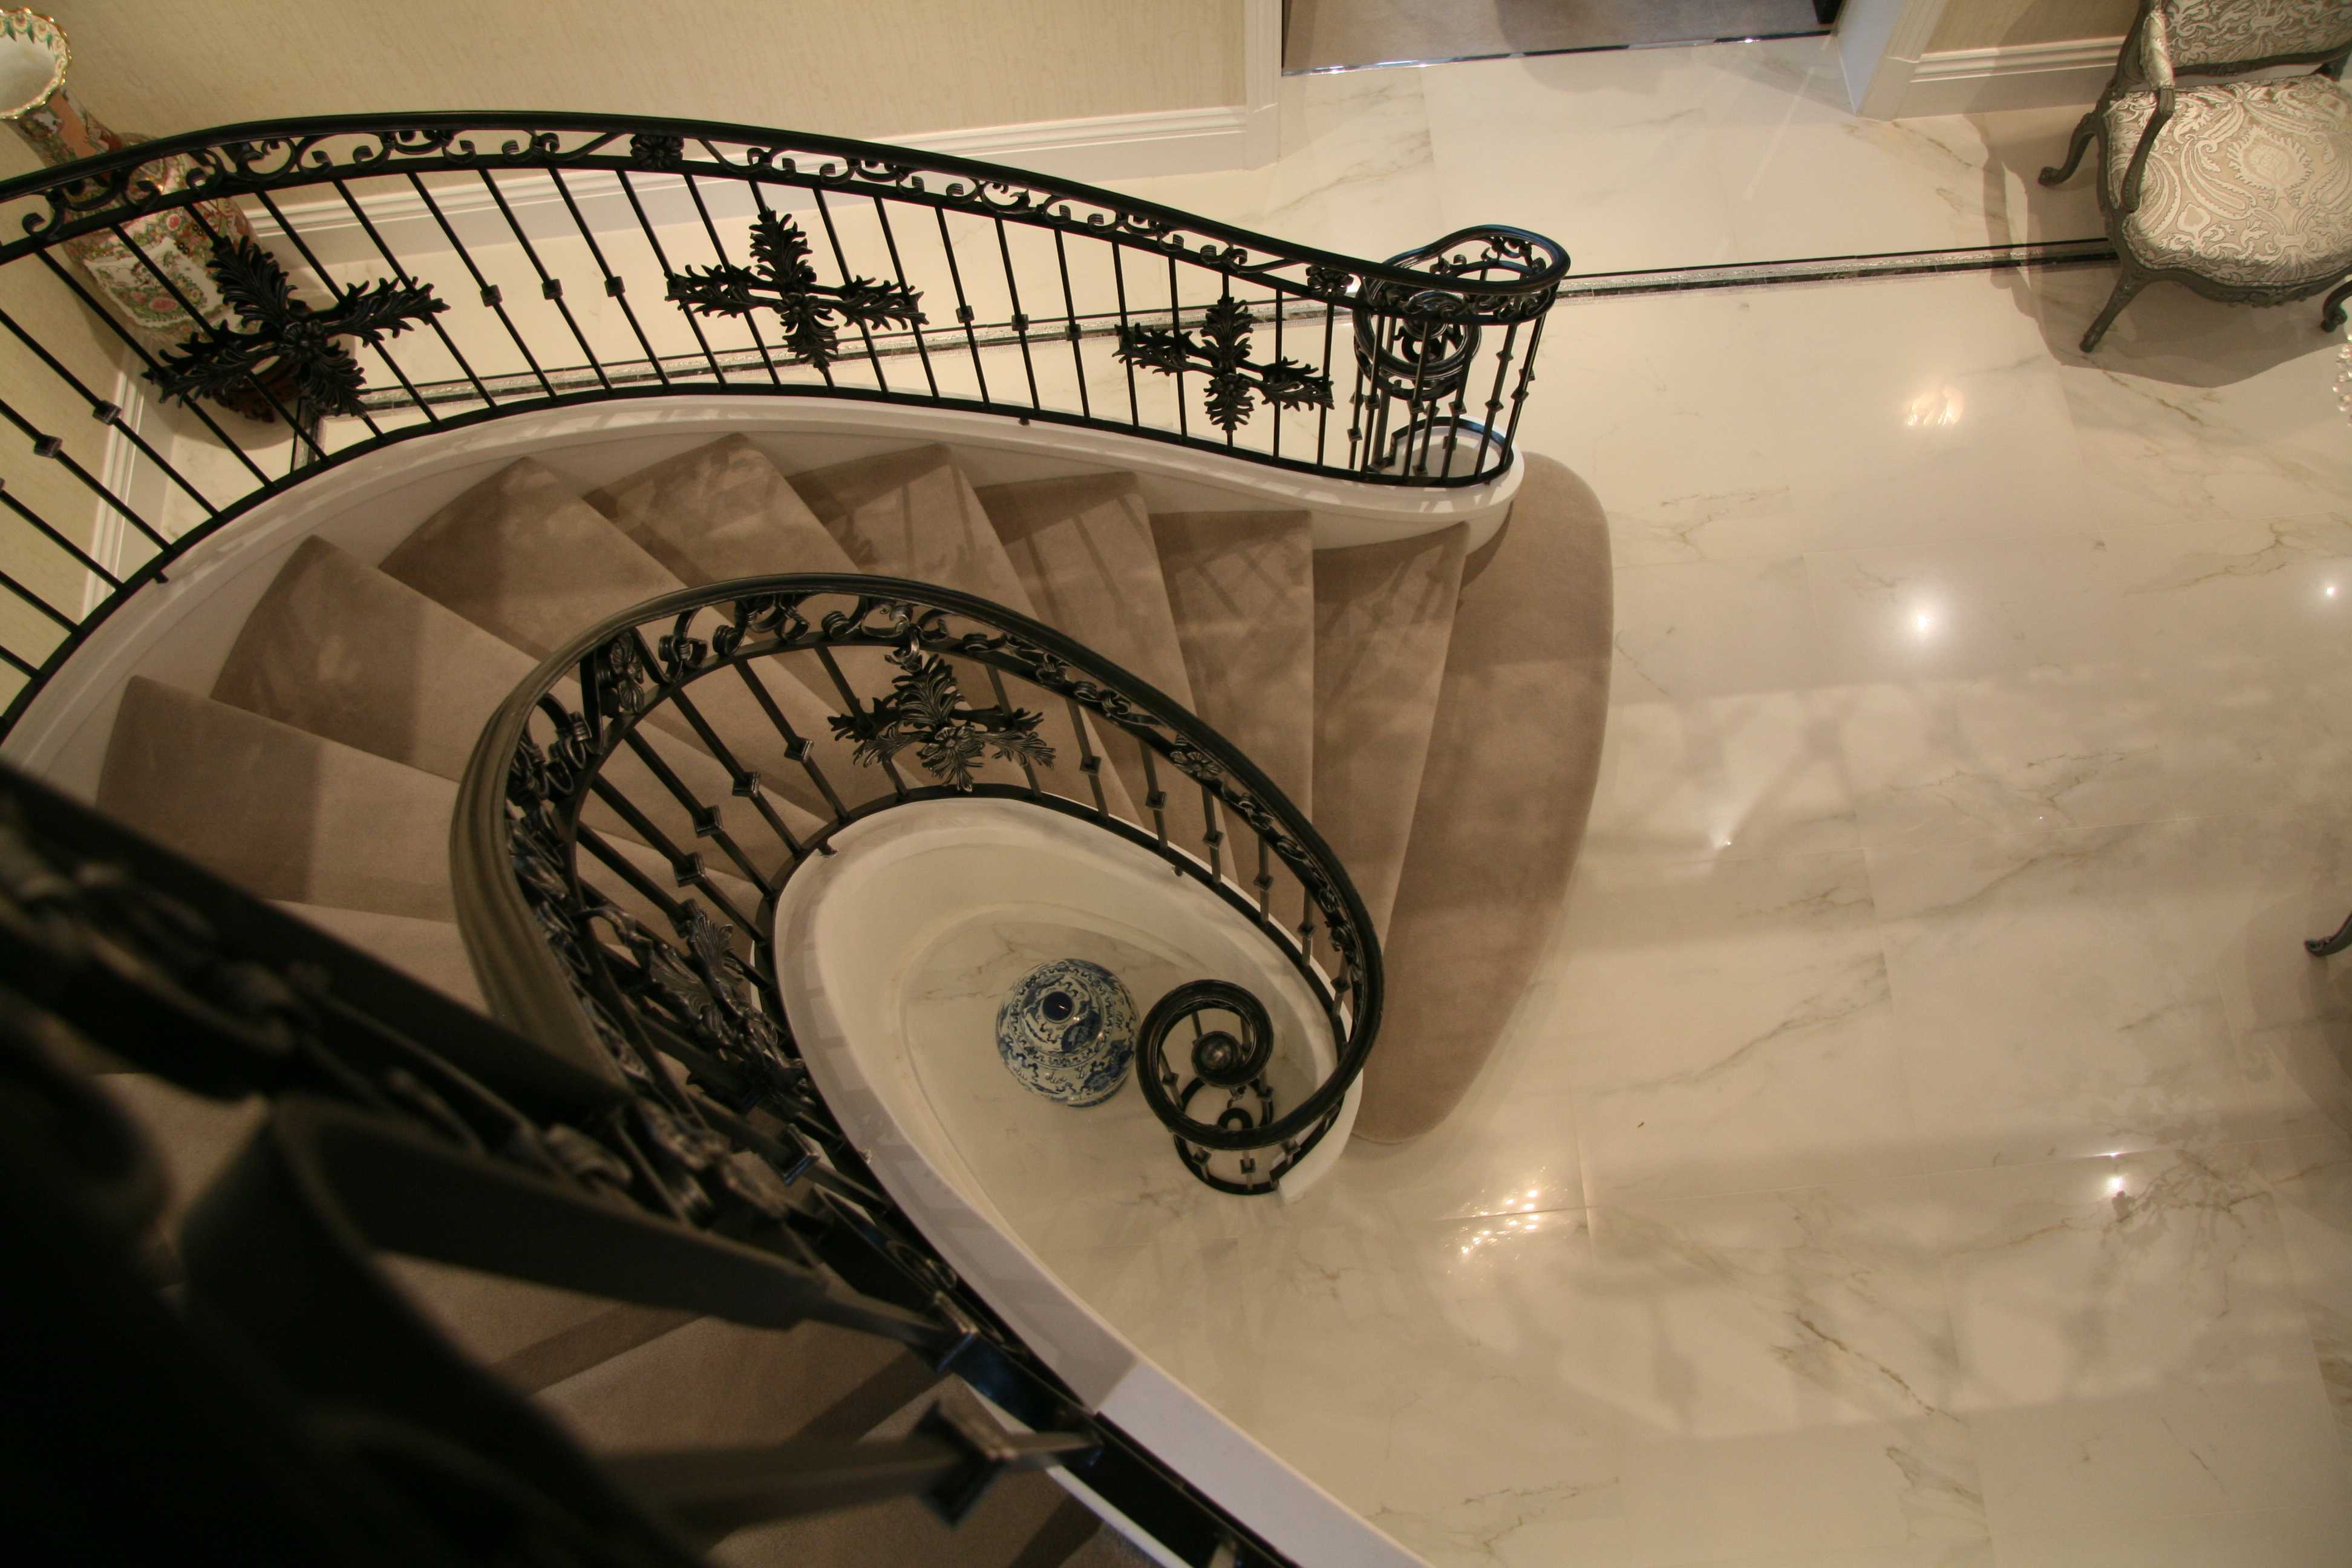 Helical Iron Staircases–the most elegant style iron staircase!